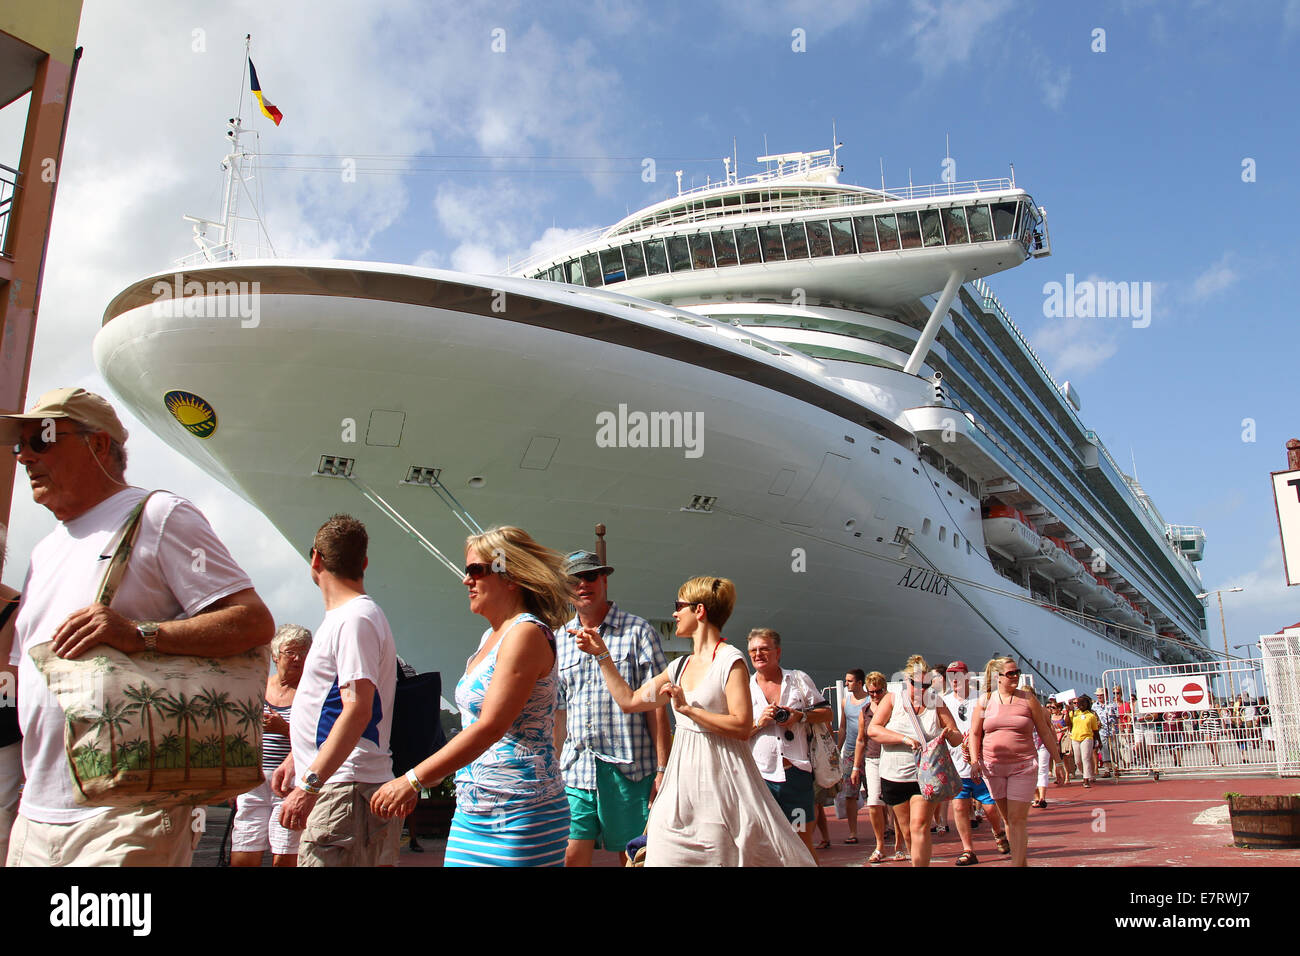 Passengers leaving the Cruise ship the AZURA - Stock Image